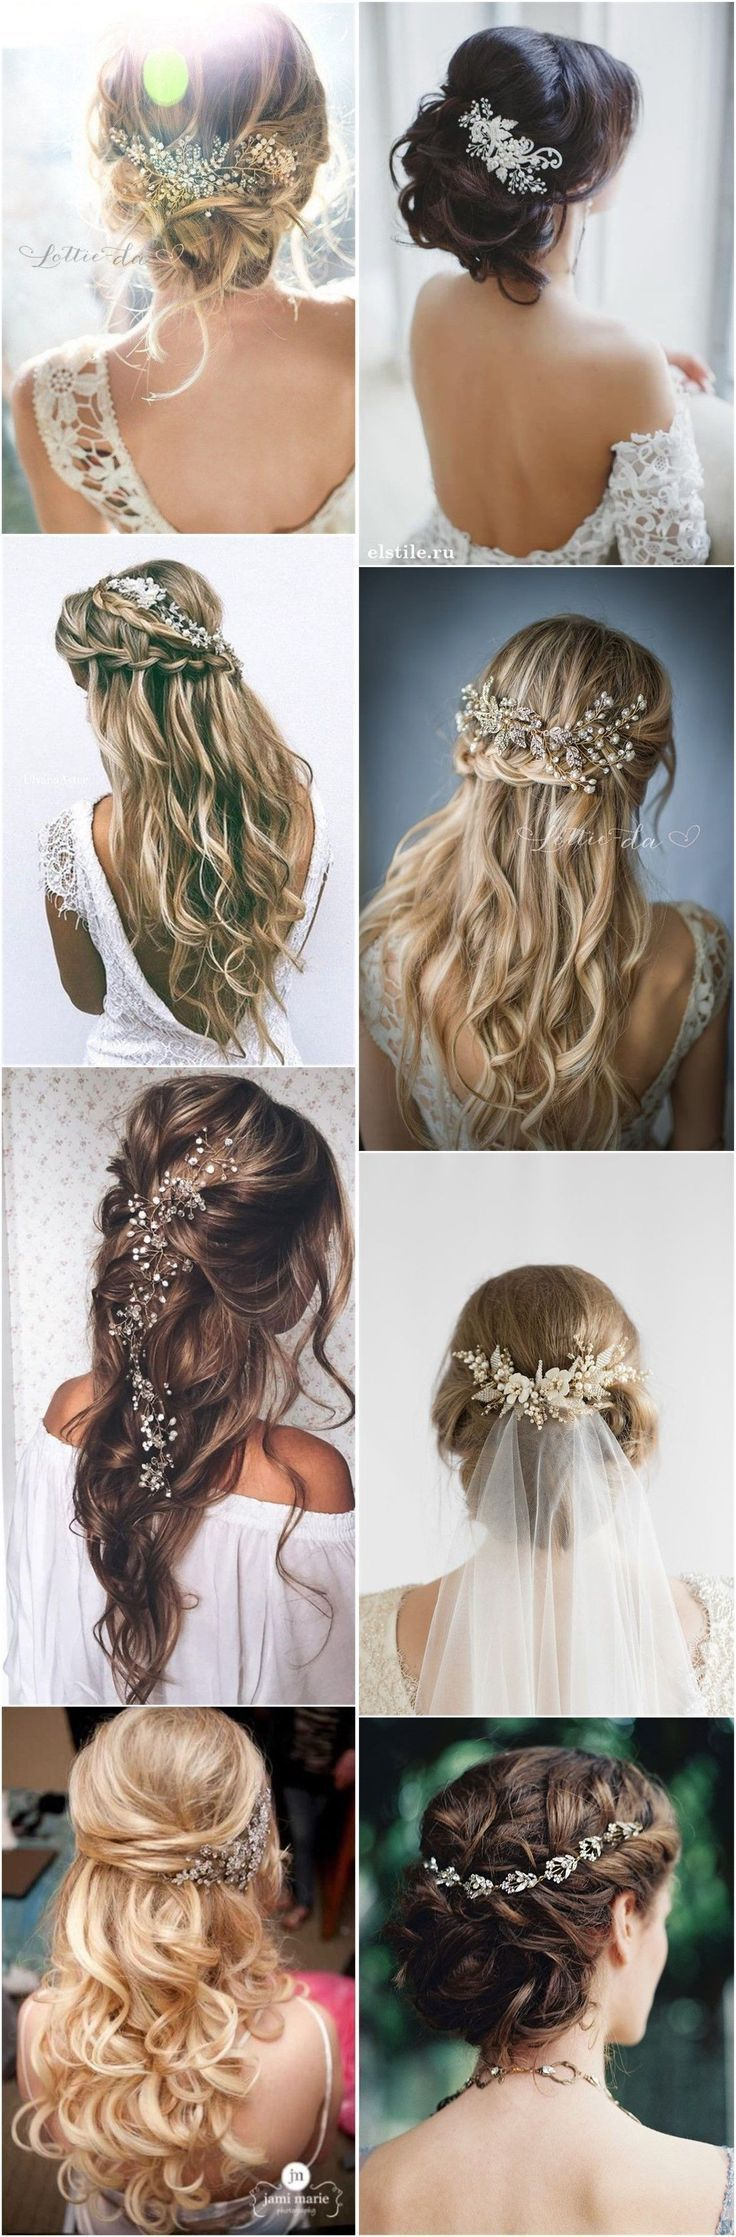 Wedding Hairstyles » Hair Comes the Bride – 20 Bridal Hair Accessories Get Style Advice for Any Budget ❤️ See more: http://www.weddinginclude.com/2017/03/hair-comes-the-bride-bridal-hair-accessories-get-style-advice-for-any-budget/ #weddingaccessories #weddingadvice #weddinghairaccessories